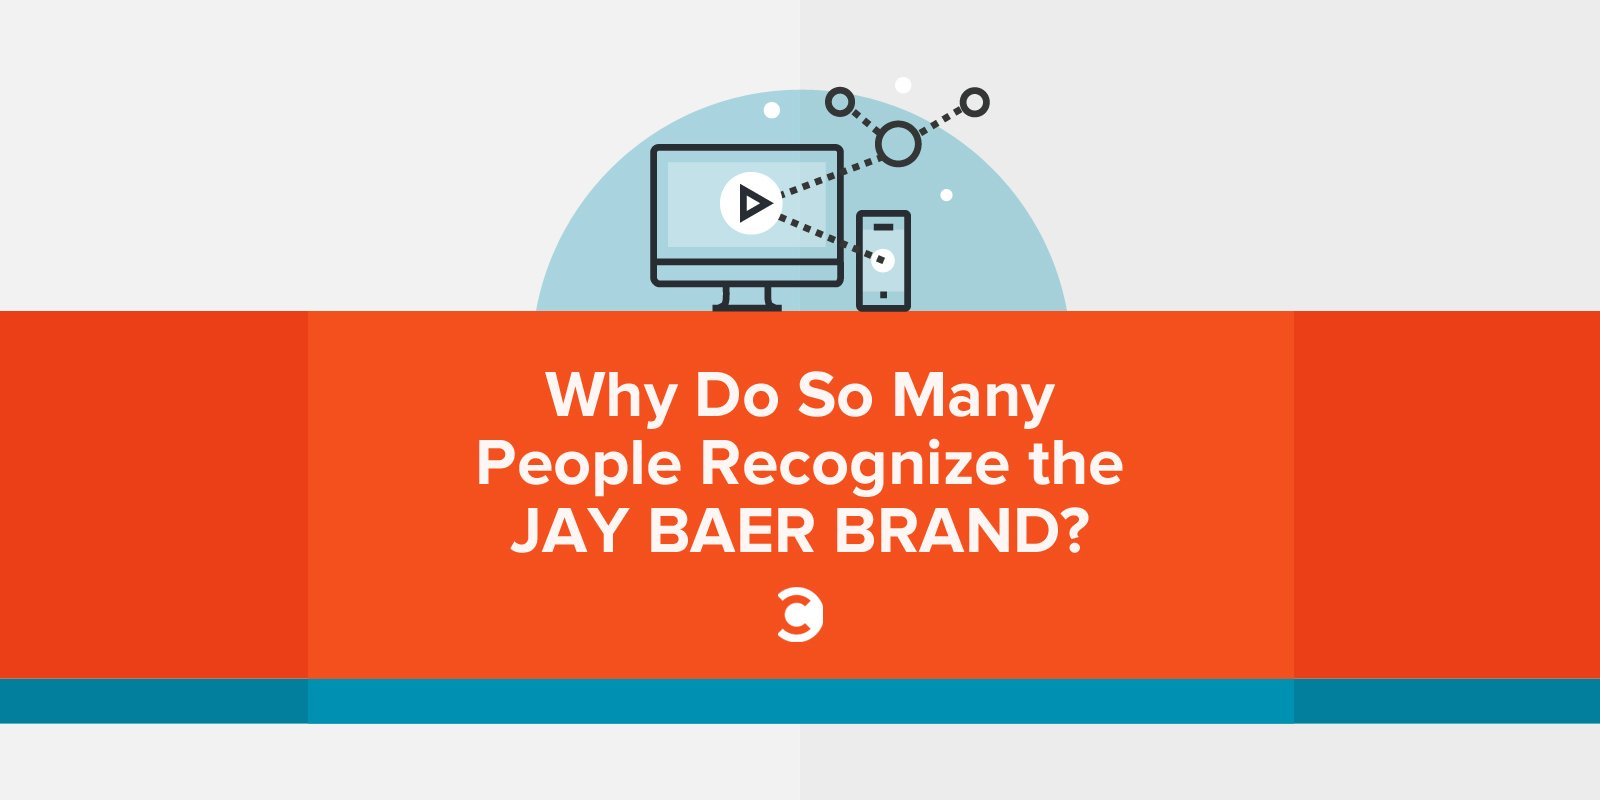 Why Do So Many People Recognize the Jay Baer Brand